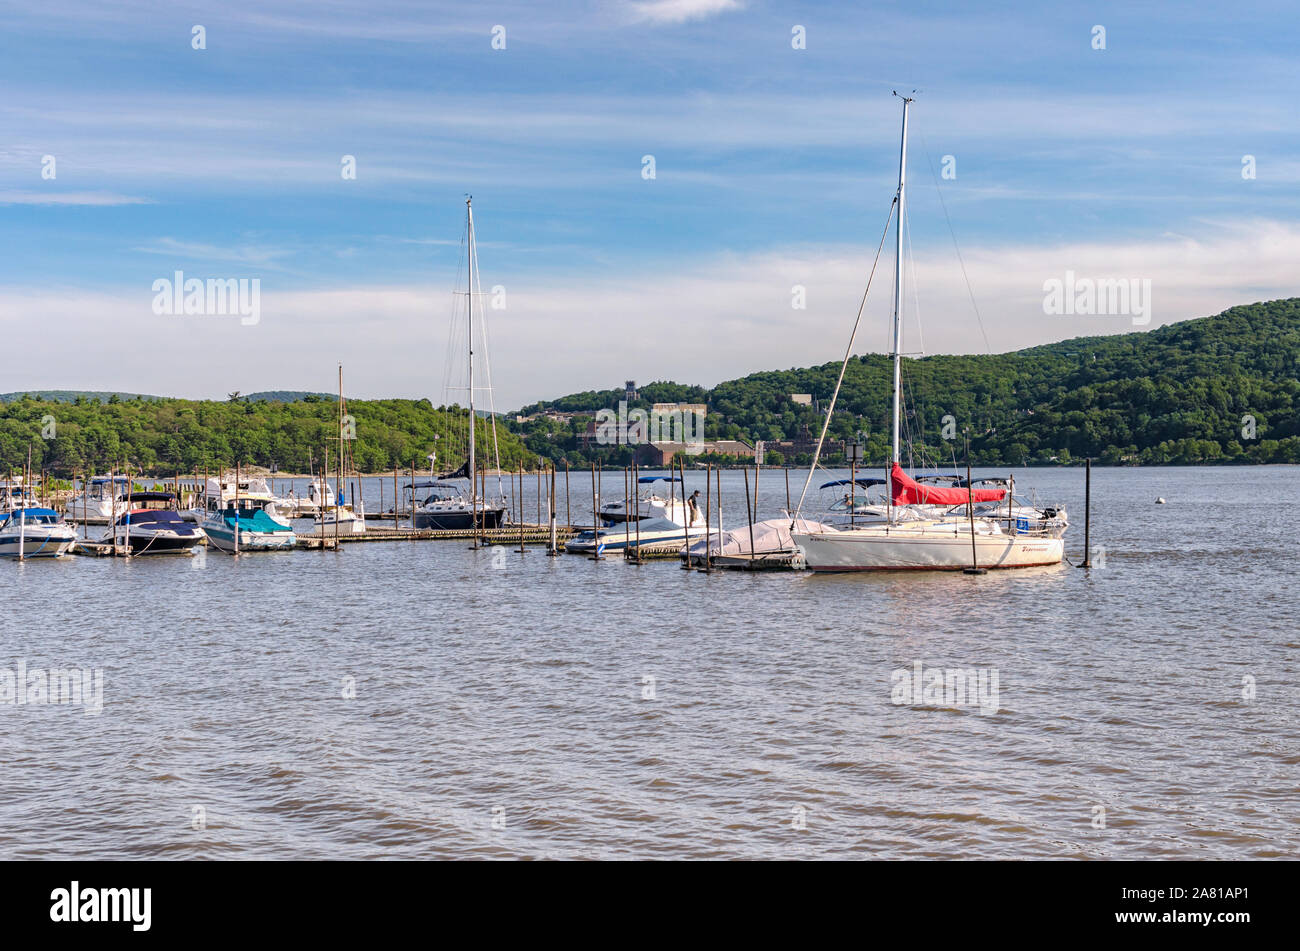 sailboats-and-boats-moored-on-the-hudson-river-cold-spring-putnam-county-new-york-usa-looking-across-the-river-to-highlands-ny-2A81AP1.jpg